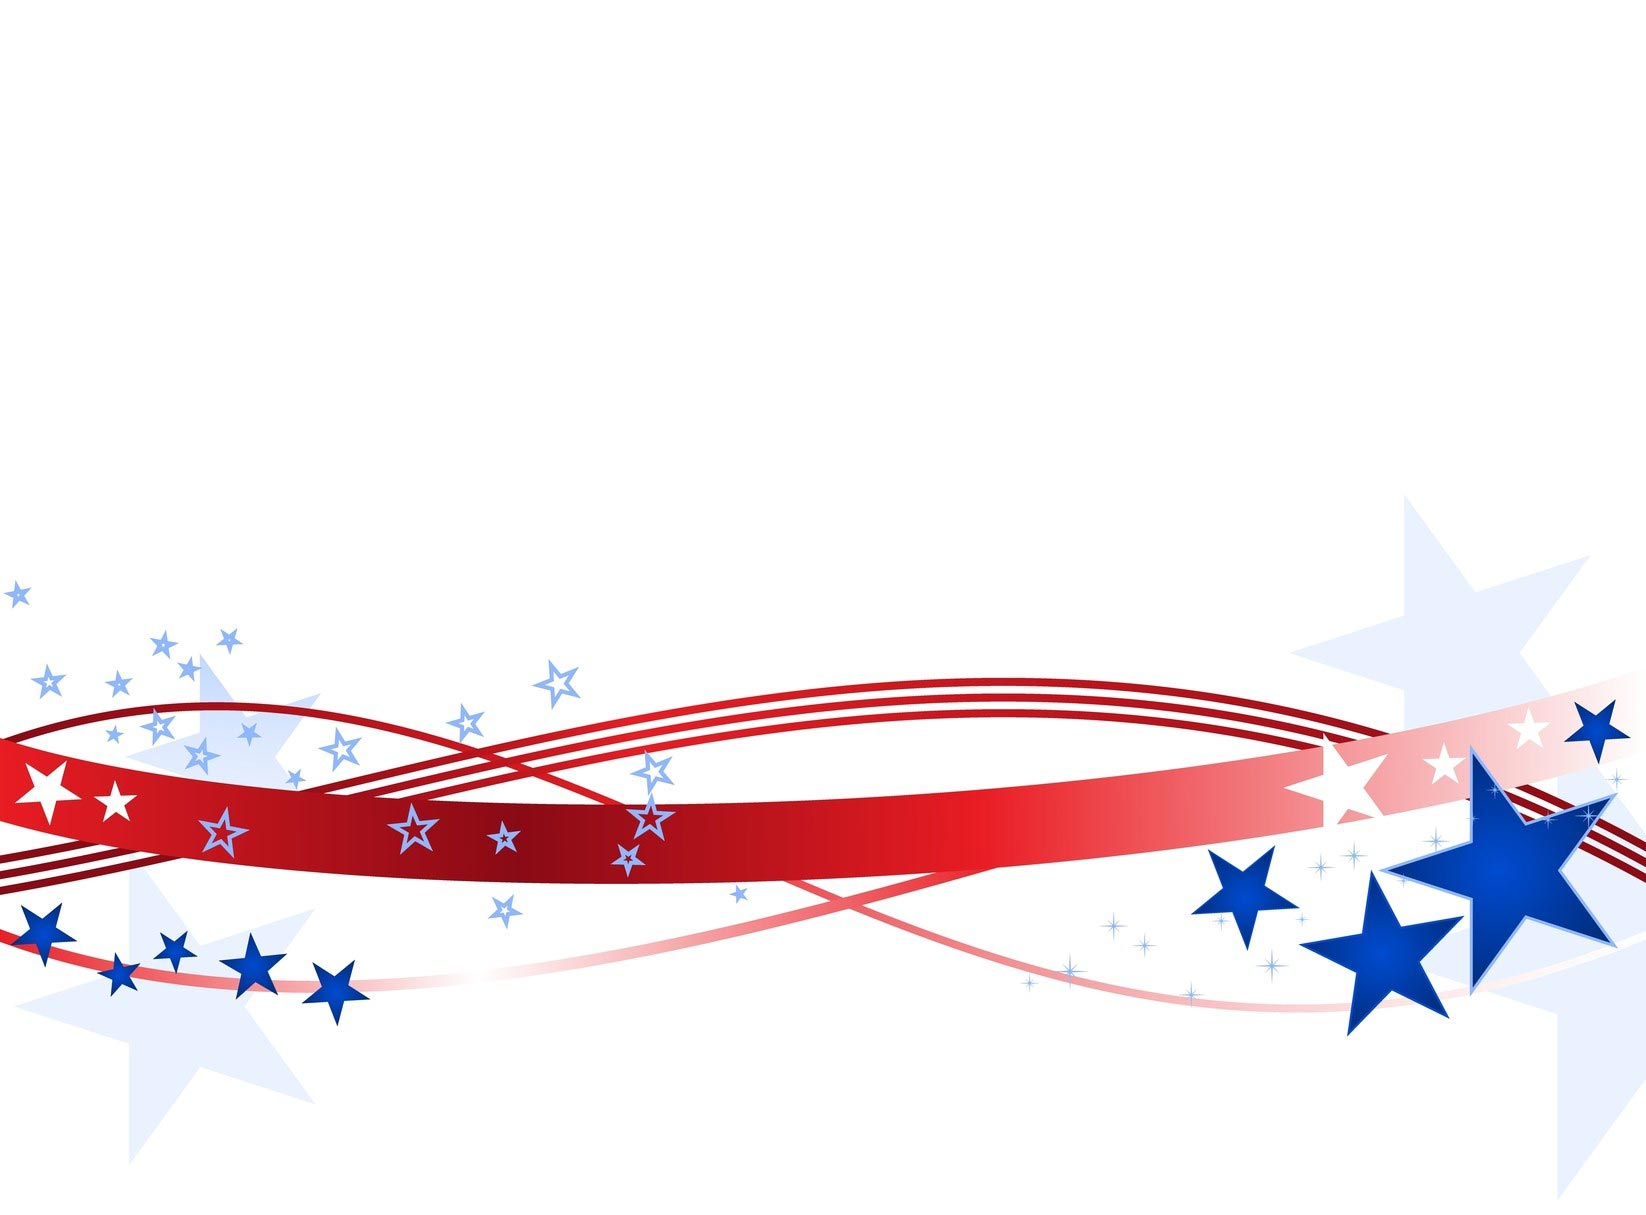 Free vector clipart fourth of july border